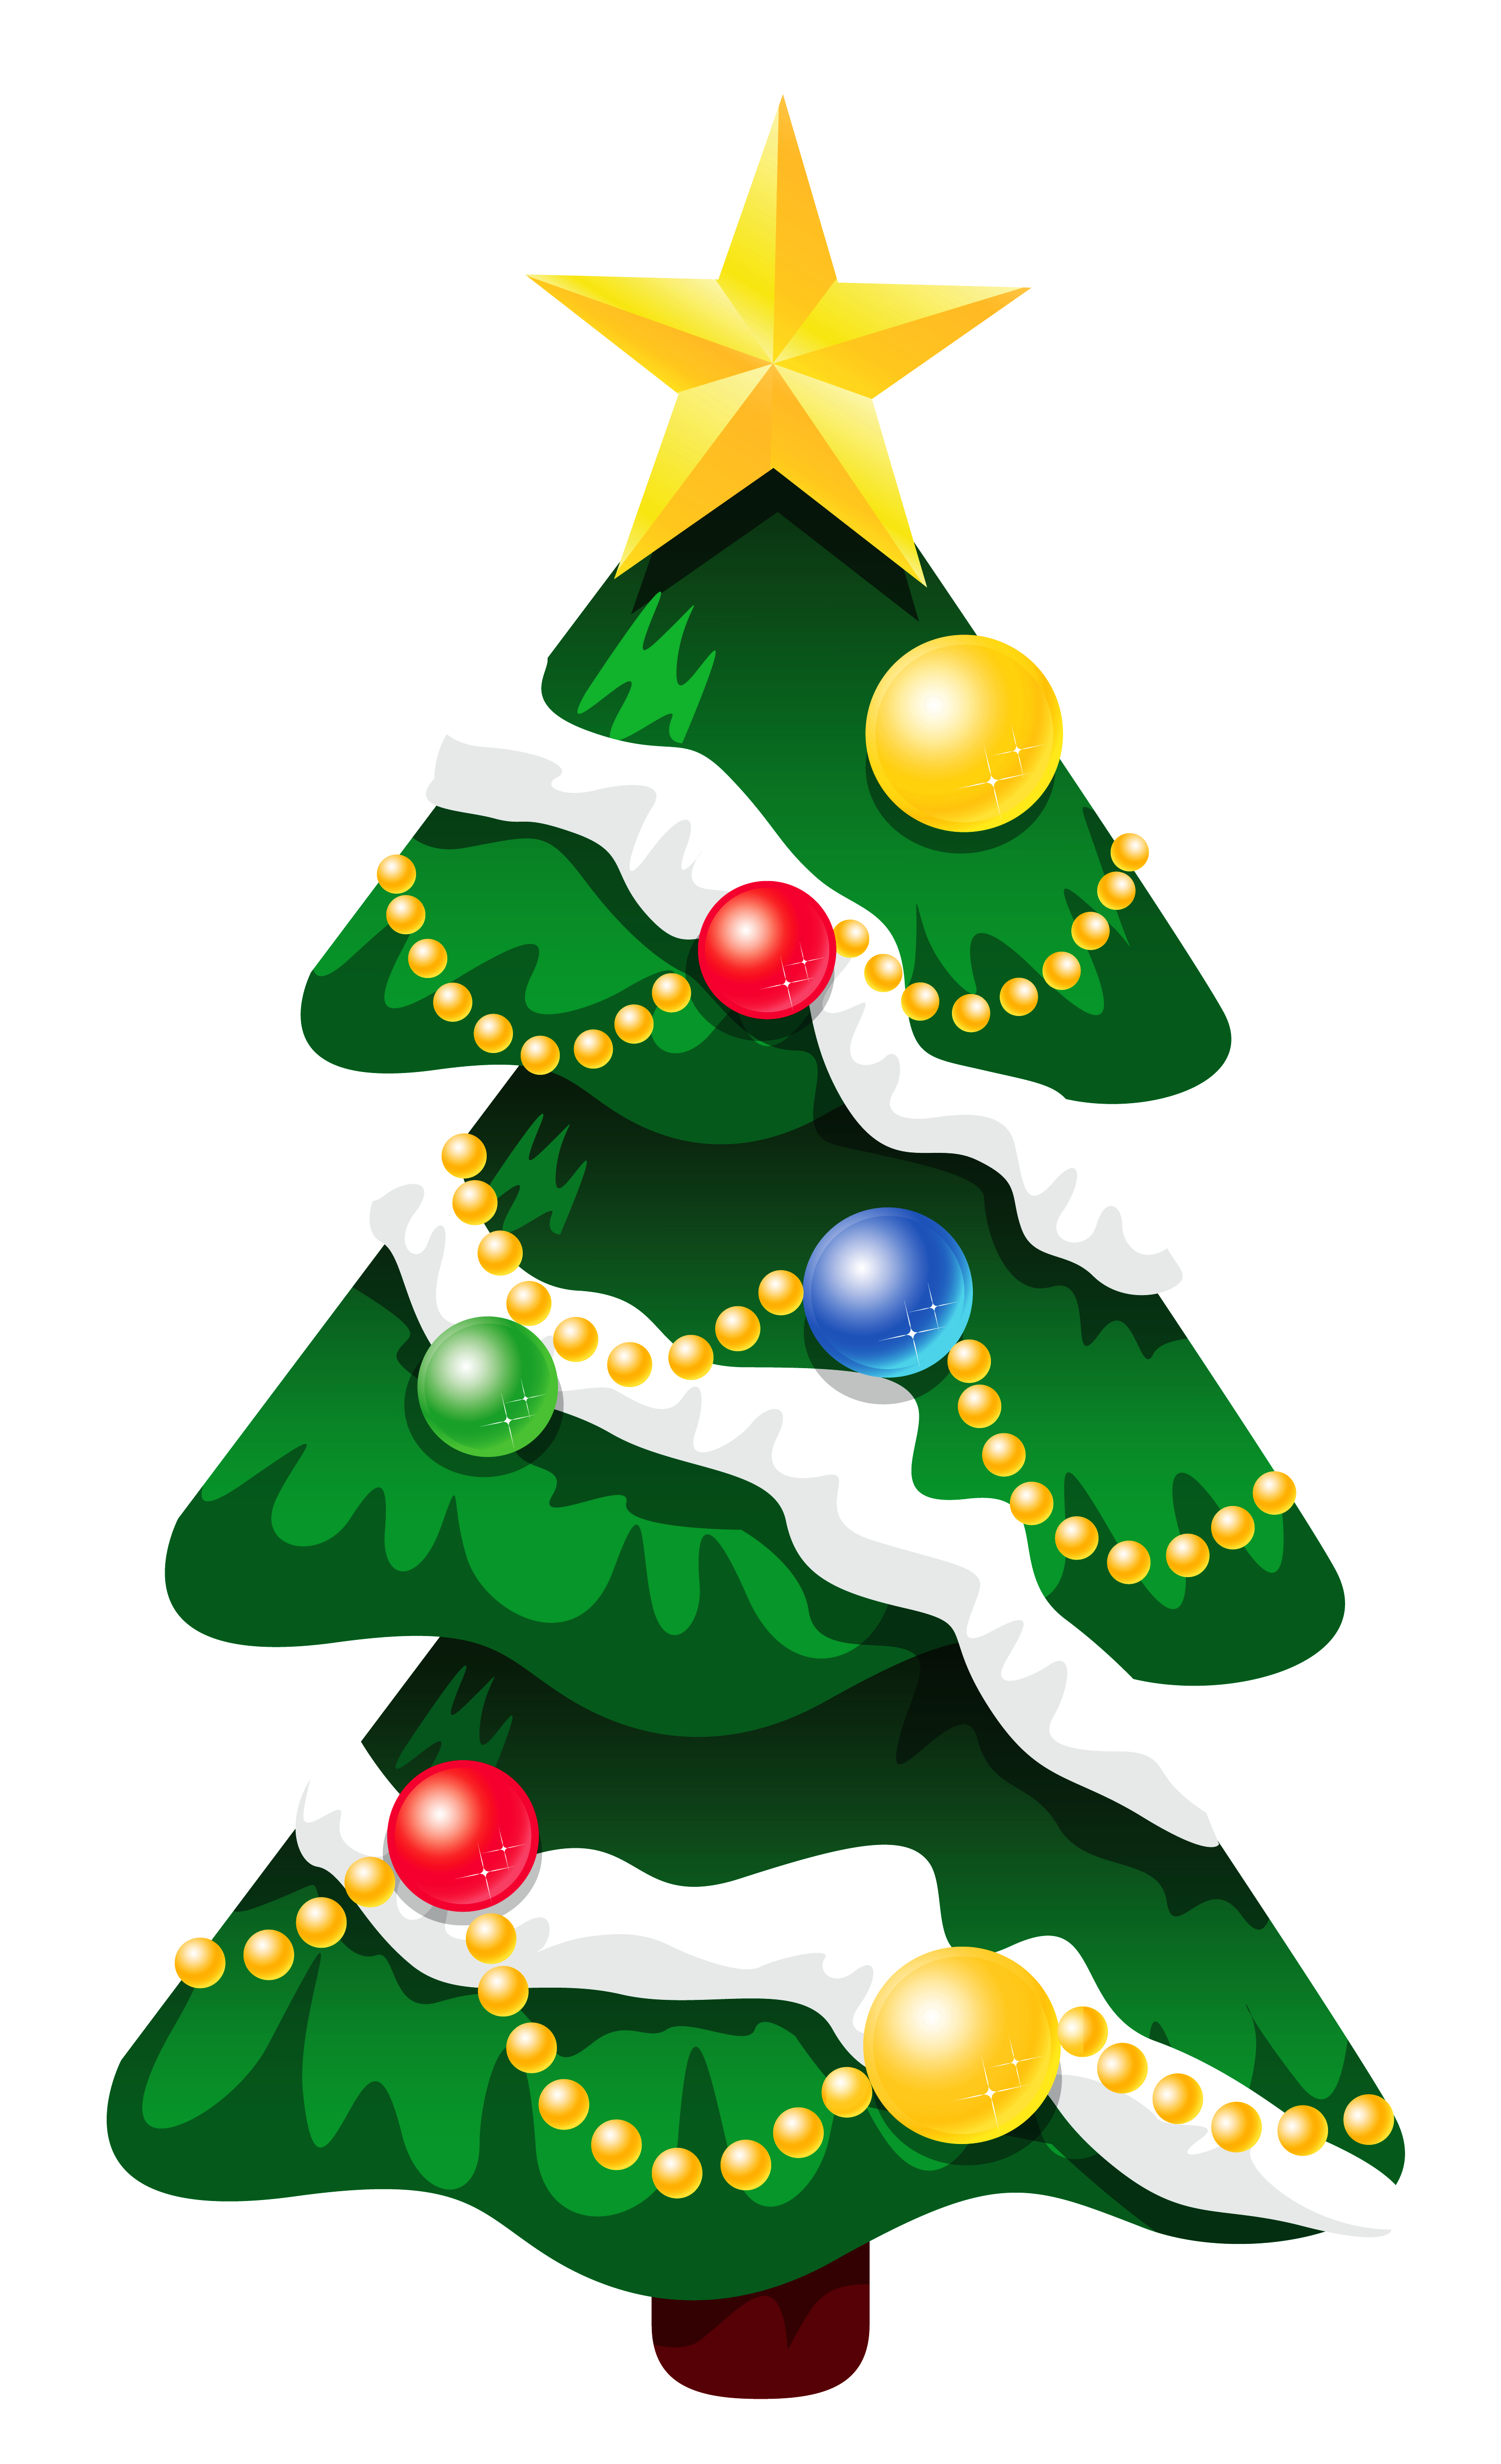 3081x5059 Transparent Snowy Deco Xmas Tree With Star Png Clipartu200b Gallery